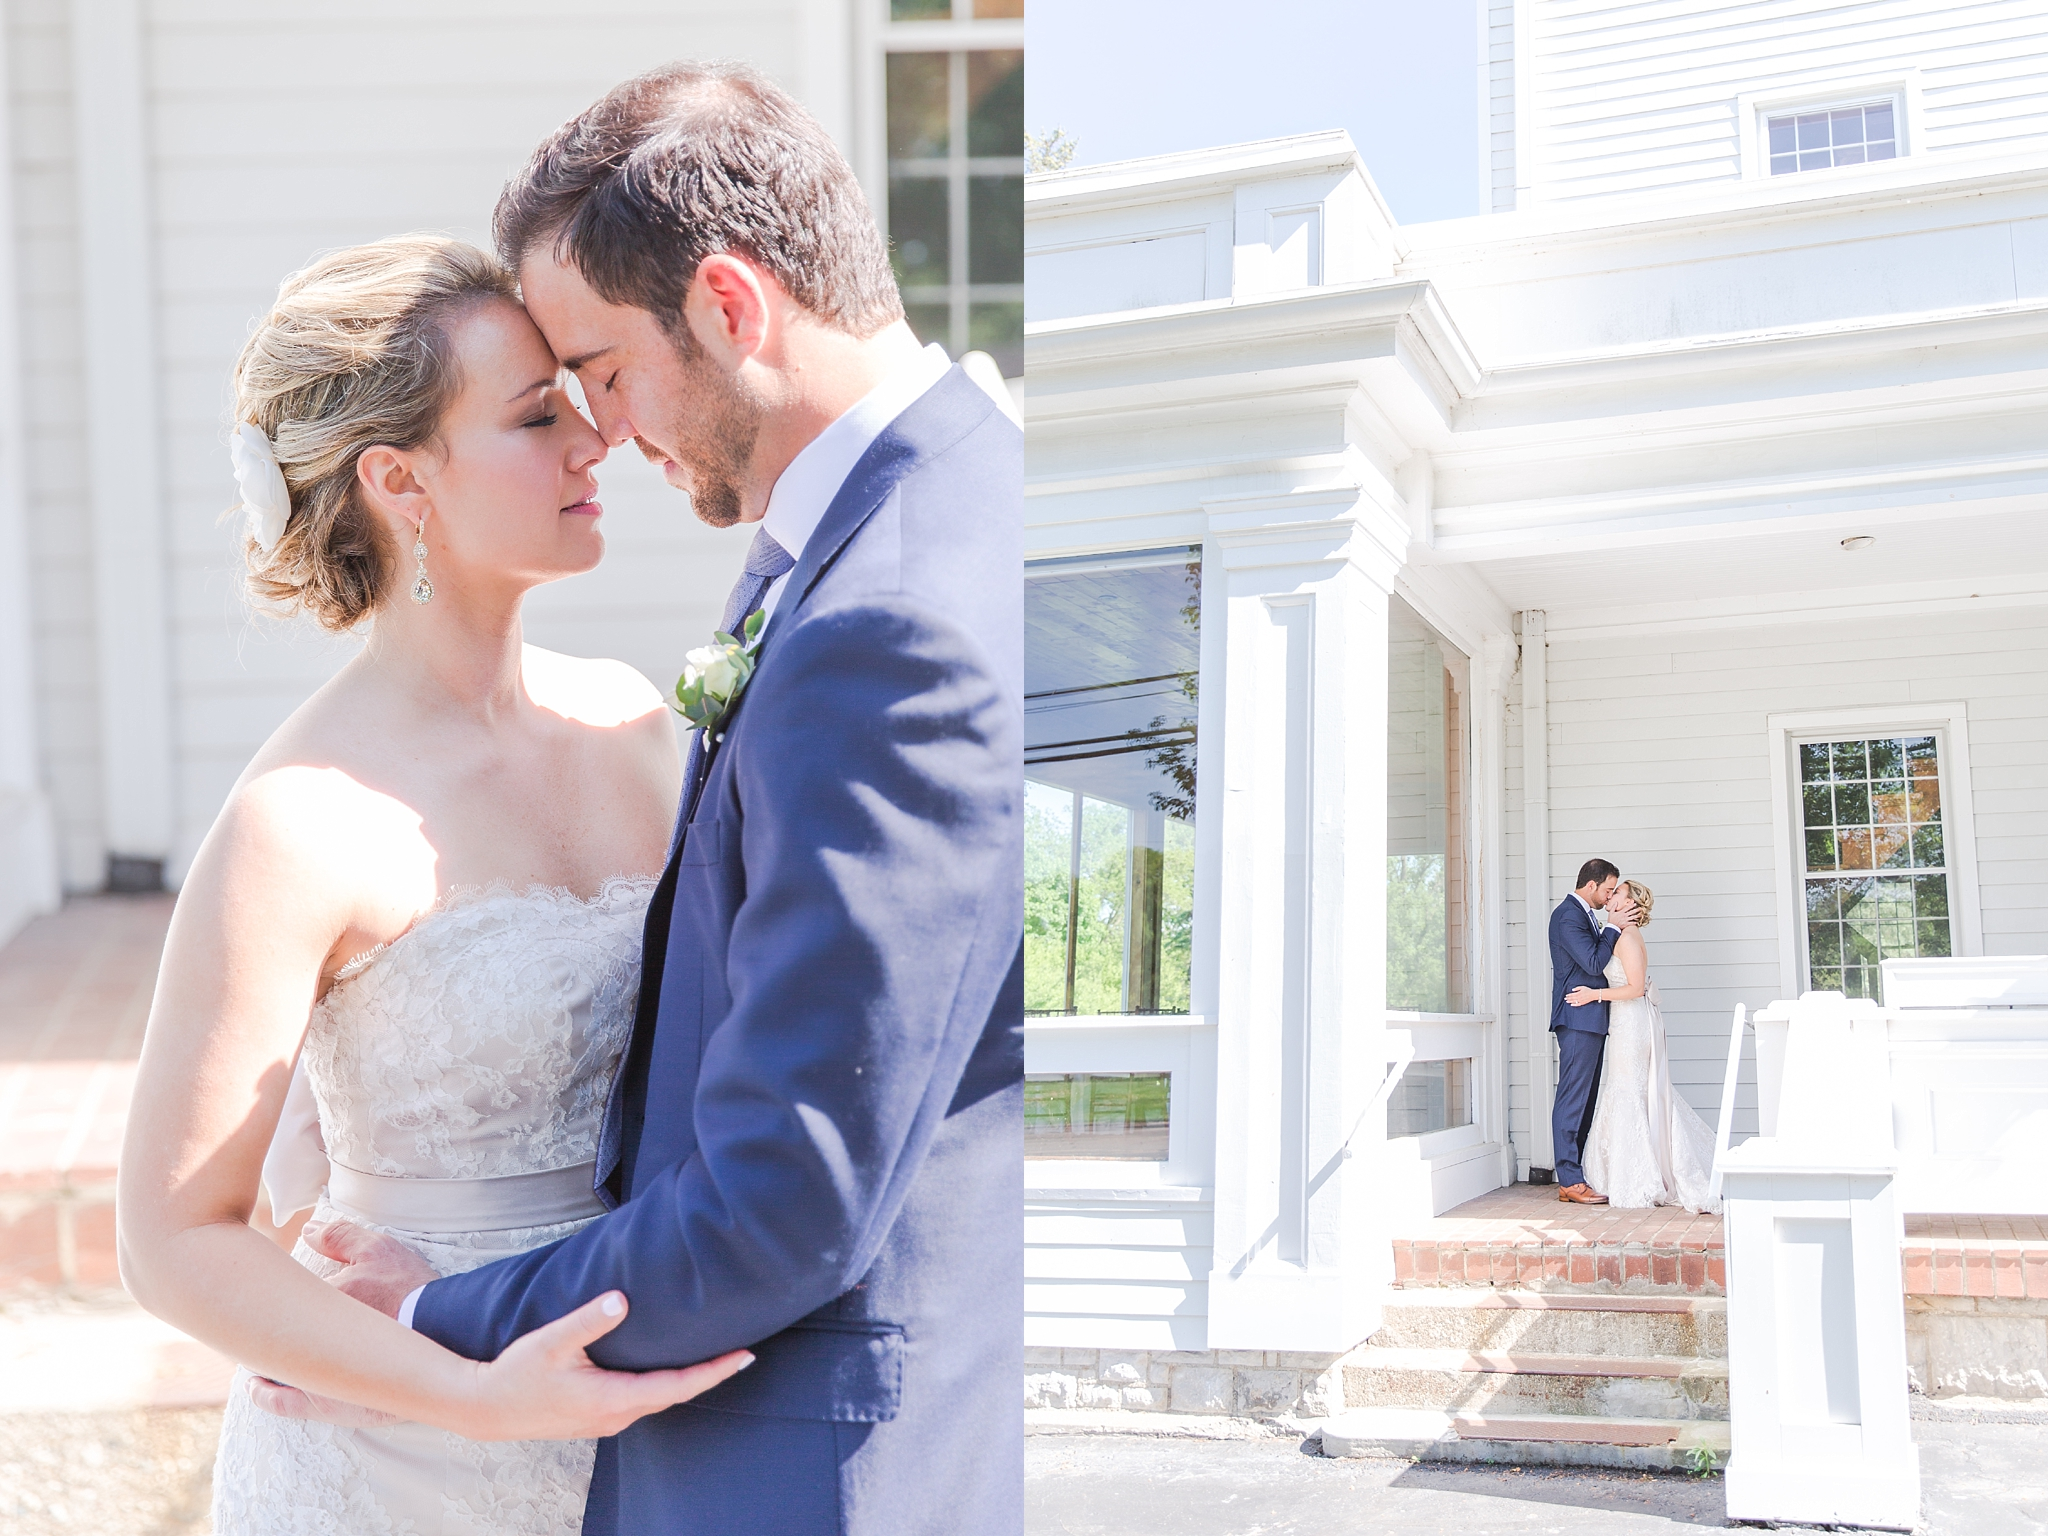 fun-candid-laid-back-wedding-photos-at-wellers-carriage-house-in-saline-michigan-and-at-the-eagle-crest-golf-resort-by-courtney-carolyn-photography_0032.jpg